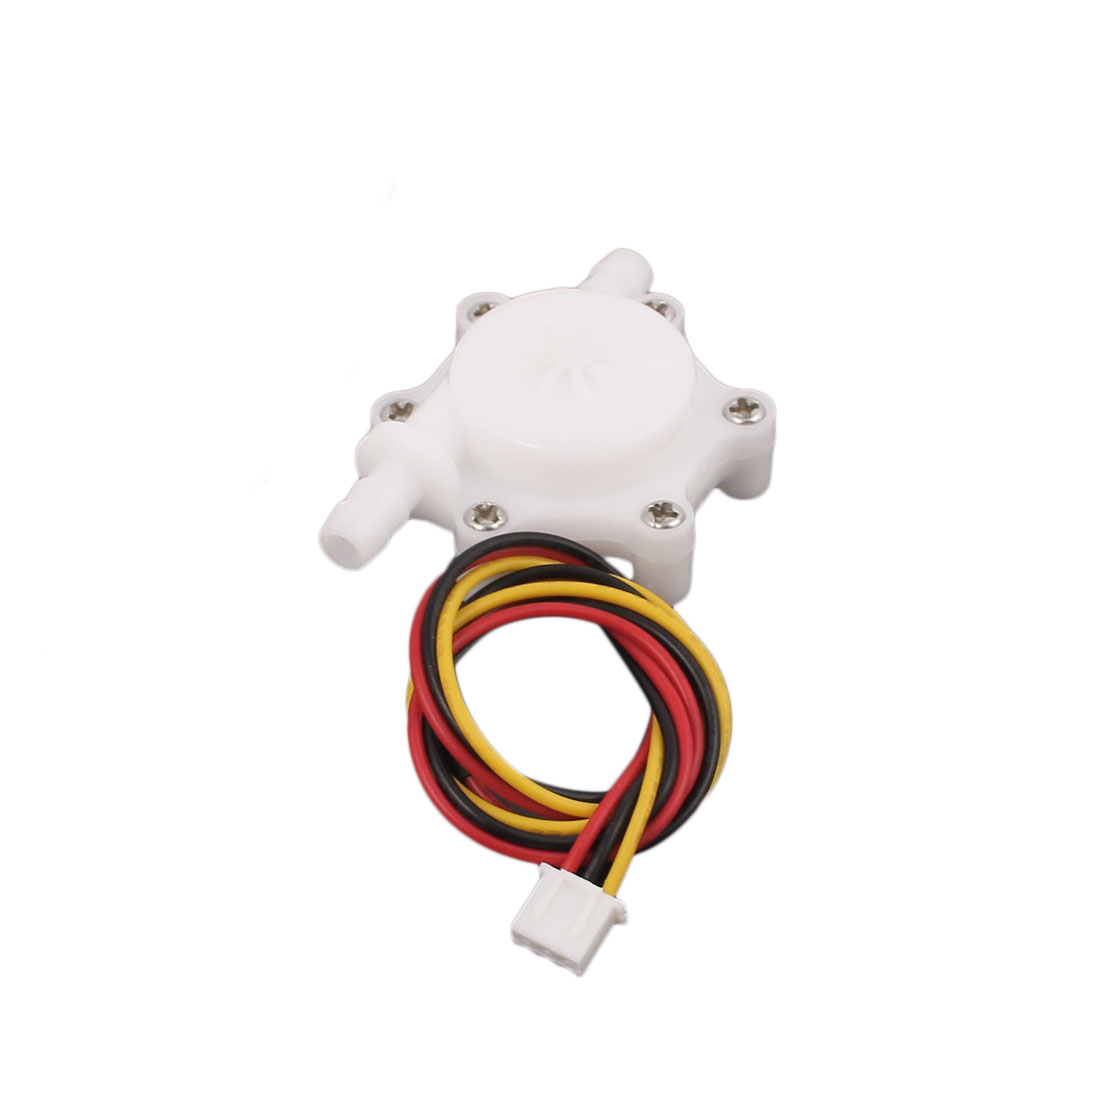 Quick Insert 6mm Outlet Inlet Hall Effect Water Flow Sensor 0.4-4L/Min